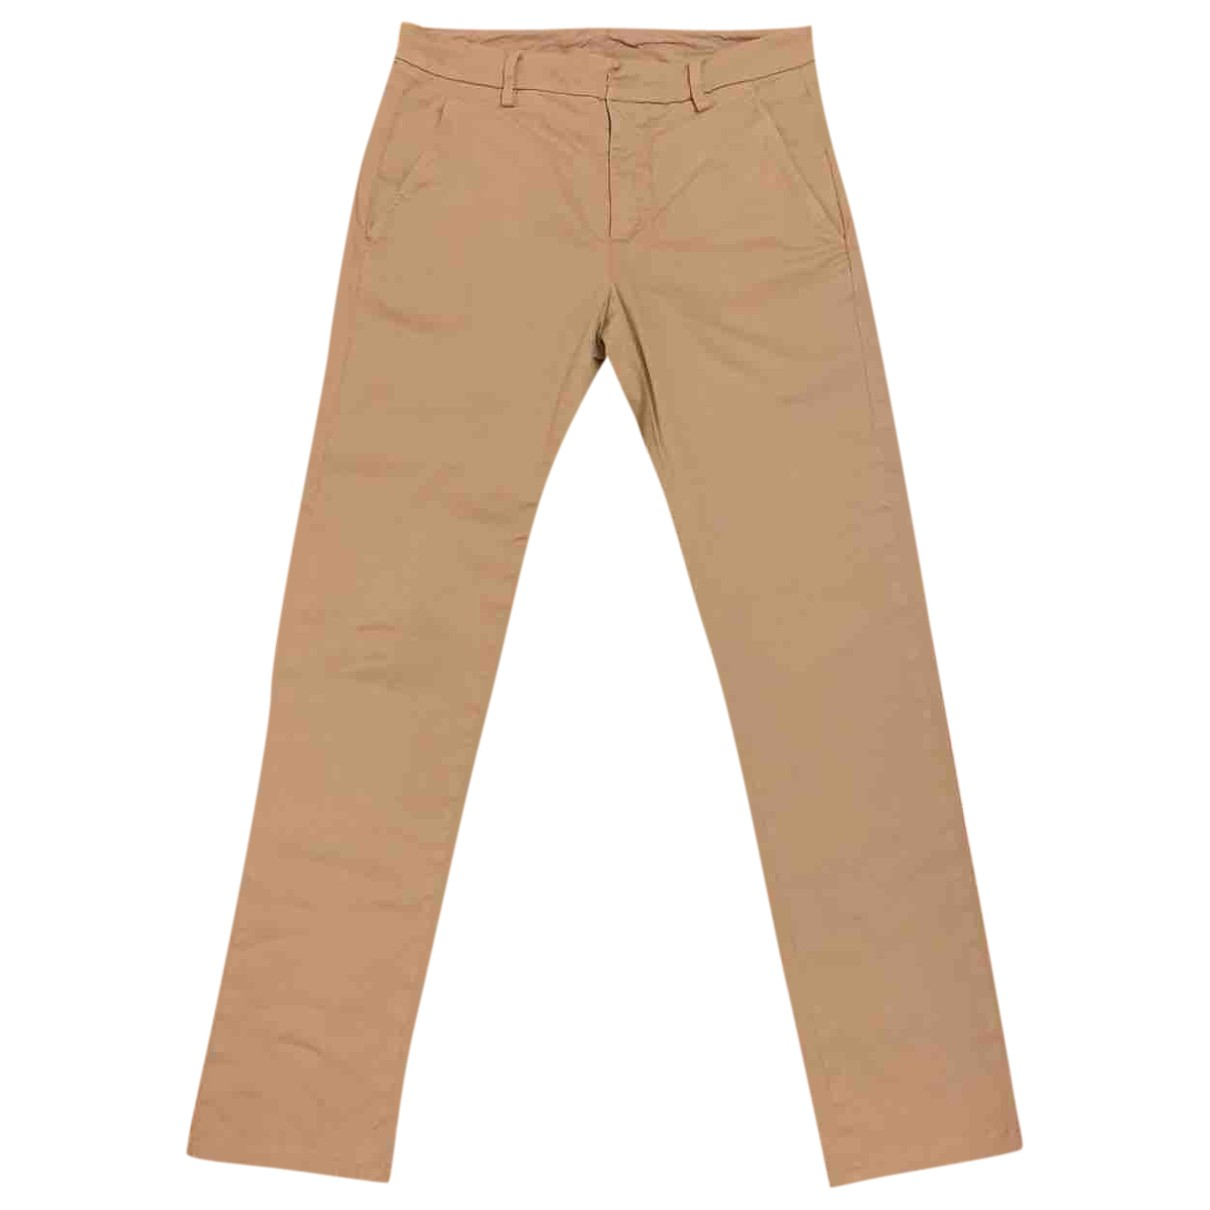 Dondup \N Beige Cotton Trousers for Men S International